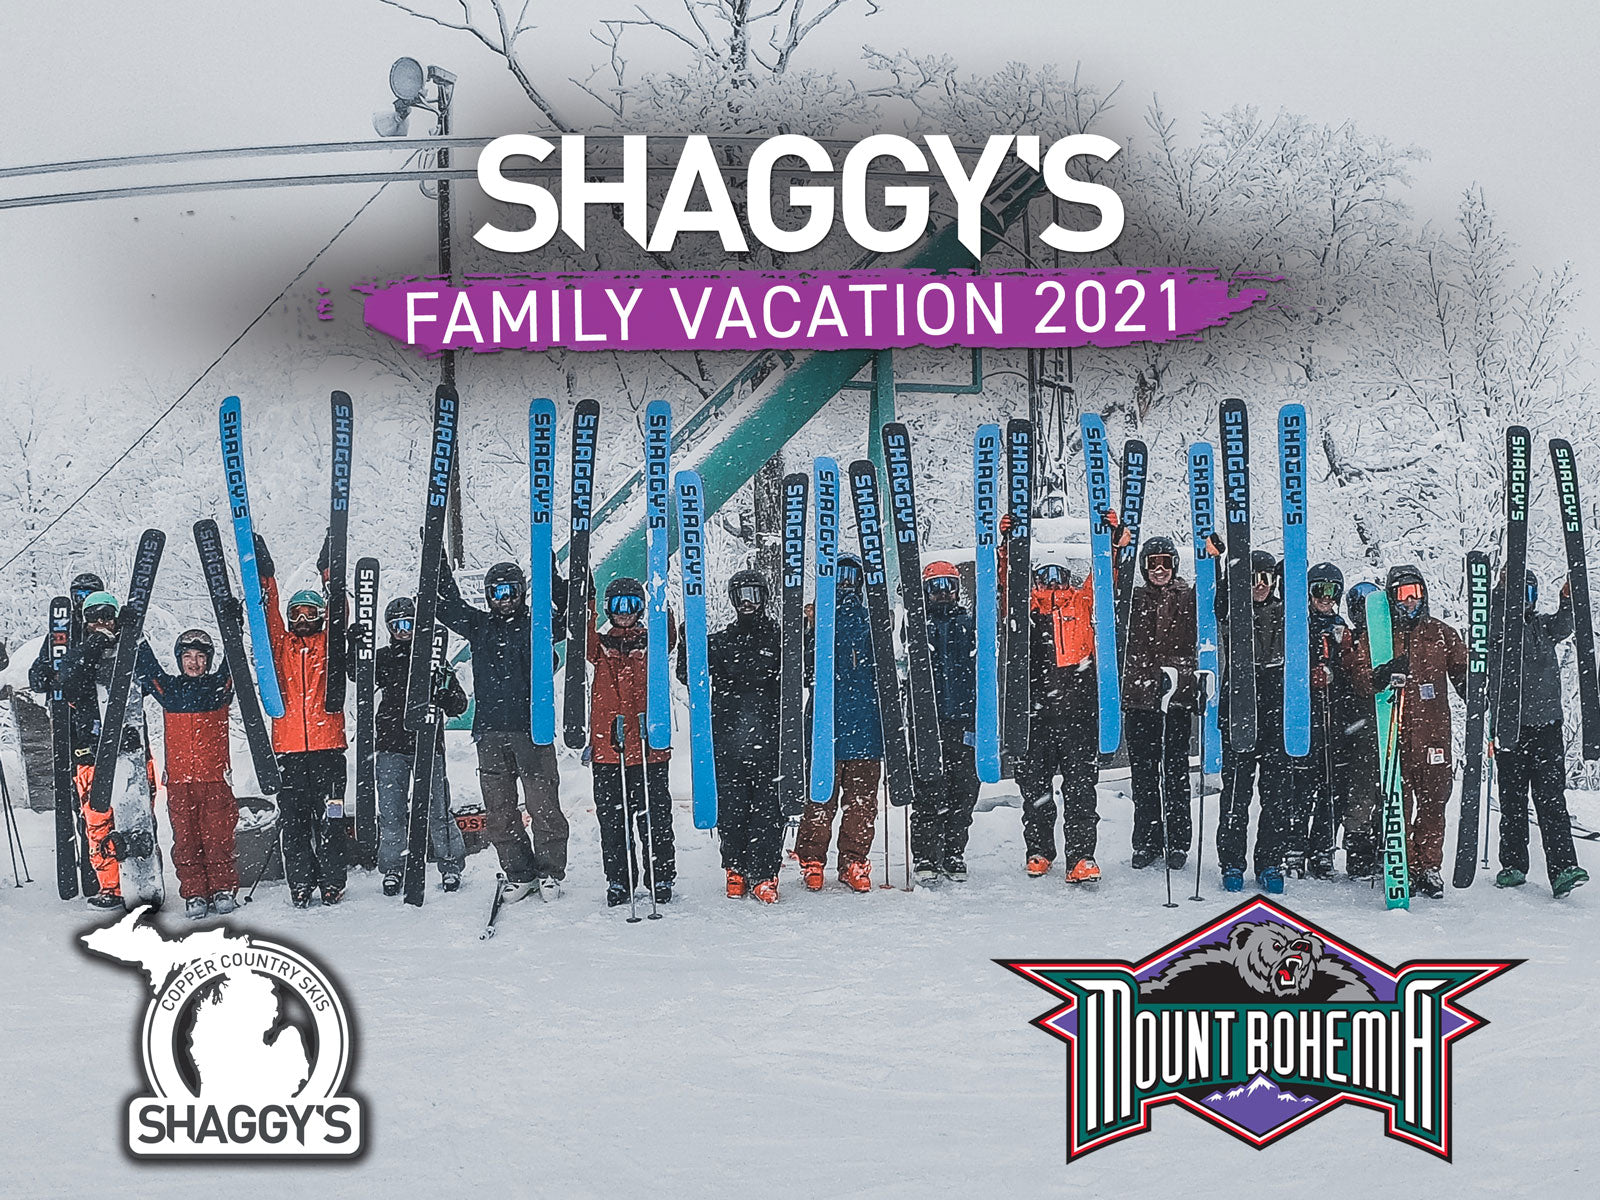 Shaggy's Family Vacation 2021